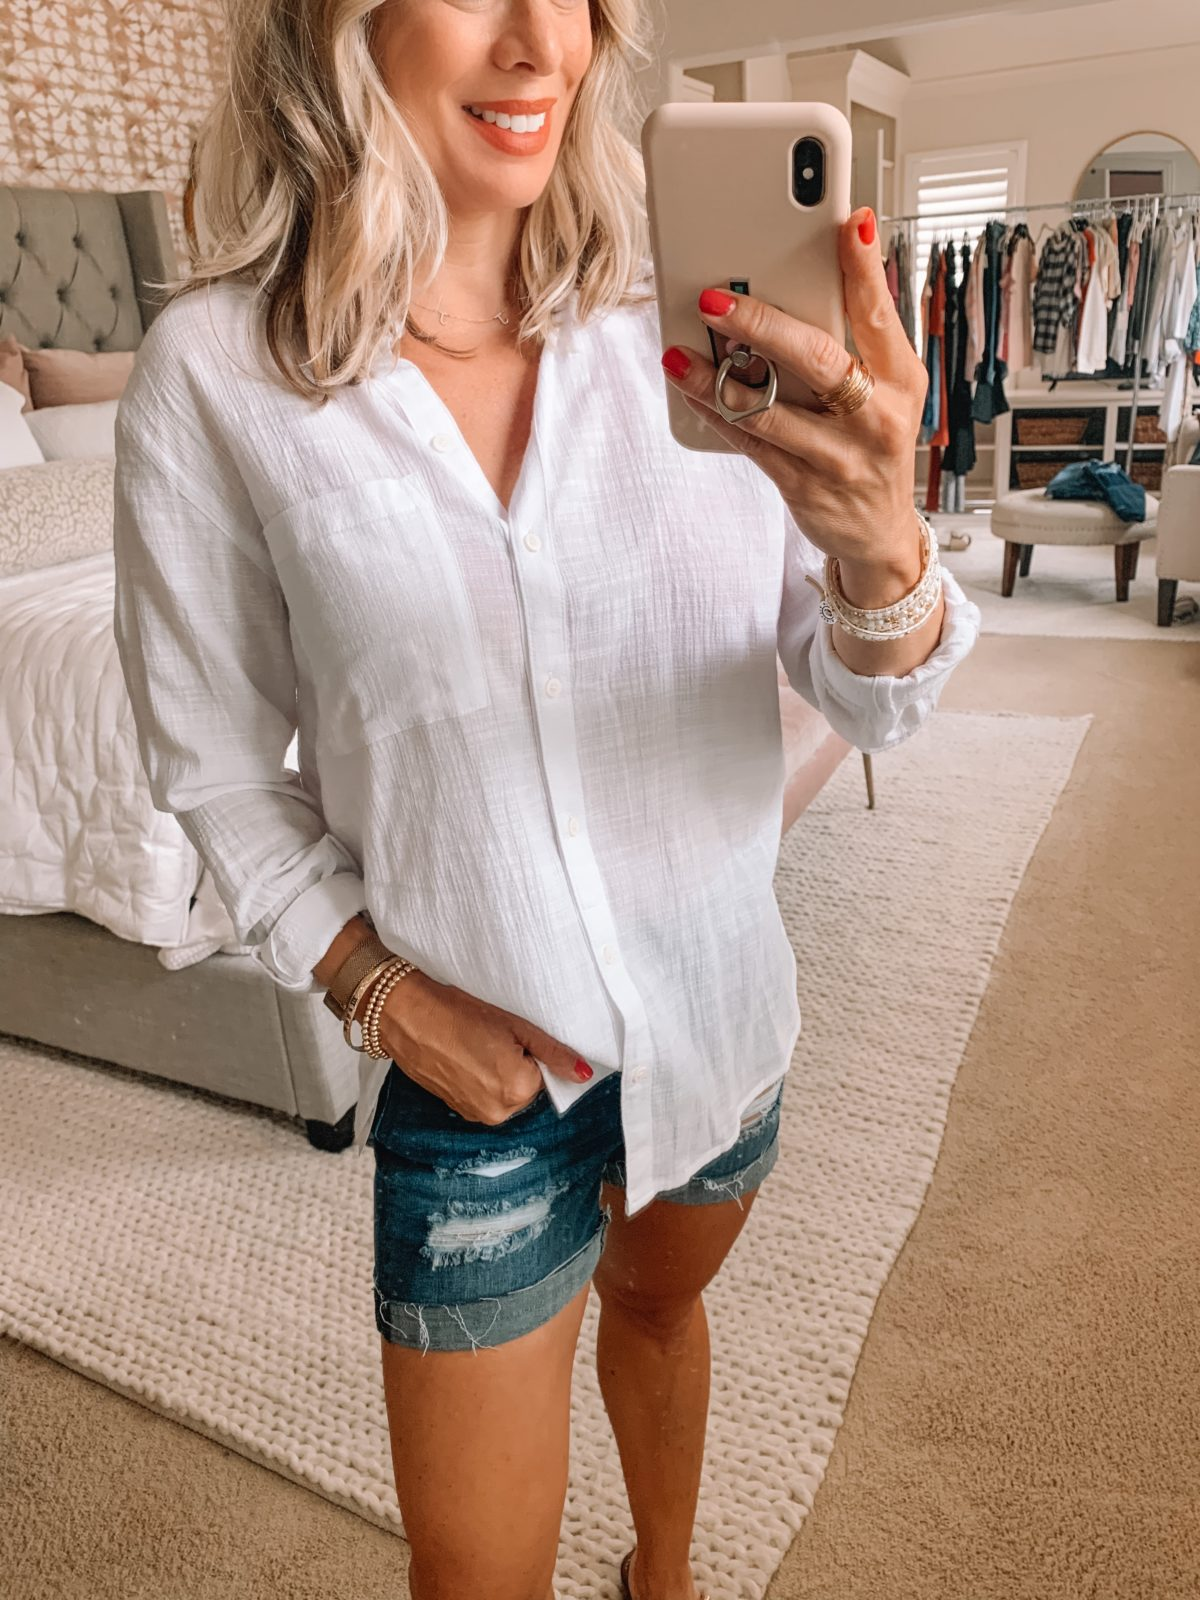 Dressing Room Finds Nordstrom and Target, White Button Down, Denim Shorts, Studded Sandals